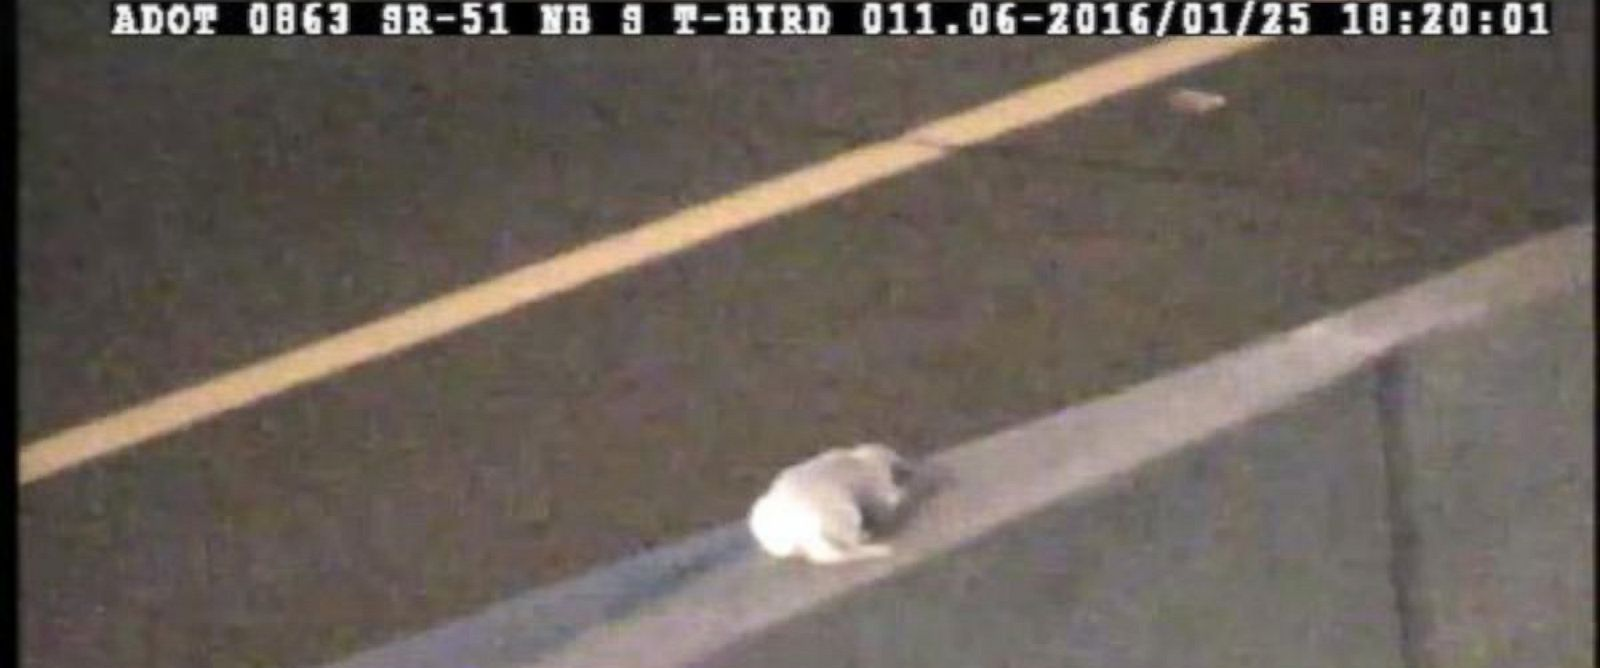 PHOTO: An Arizona Department of Transportation traffic operations center worker rescued a dog stranded in the middle of a Arizona State Route 51 near Phoenix during the evening rush hour on Jan. 25, 2016.